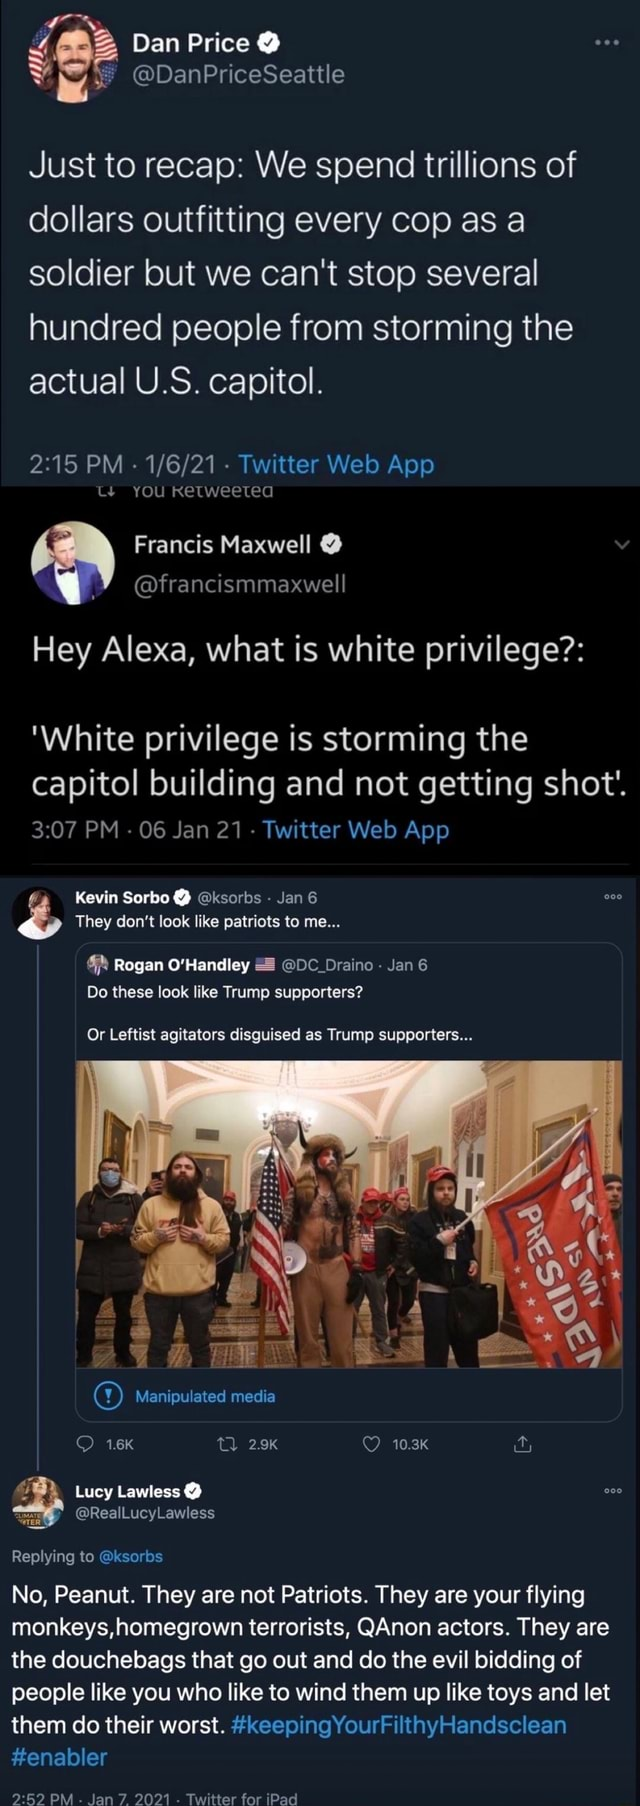 Dan Price DanPriceSeattle Just to recap We spend trillions of dollars outfitting every cop as a soldier but we can not stop several hundred people from storming the actual U.S. capitol. CS you Ketweeted Francis Maxwell francismmaxwell Hey Alexa, what is white privilege White privilege is storming the capitol building and not getting shot'. They do not look like patriots to me Kevin Sorbo ksorbs Jan 6 Rogan O'Handley DC Draino Jan Do these look like Trump supporters Or Leftist agitators disguised as Trump supporters Manipulated media 10.3K Lucy Lawless Replying to ksorbs No, Peanut. They are not Patriots. They are your flying monkeys, homegrown terrorists, Anon actors. They are the douchebags that go out and do the evil bidding of people like you who like to wind them up like toys and